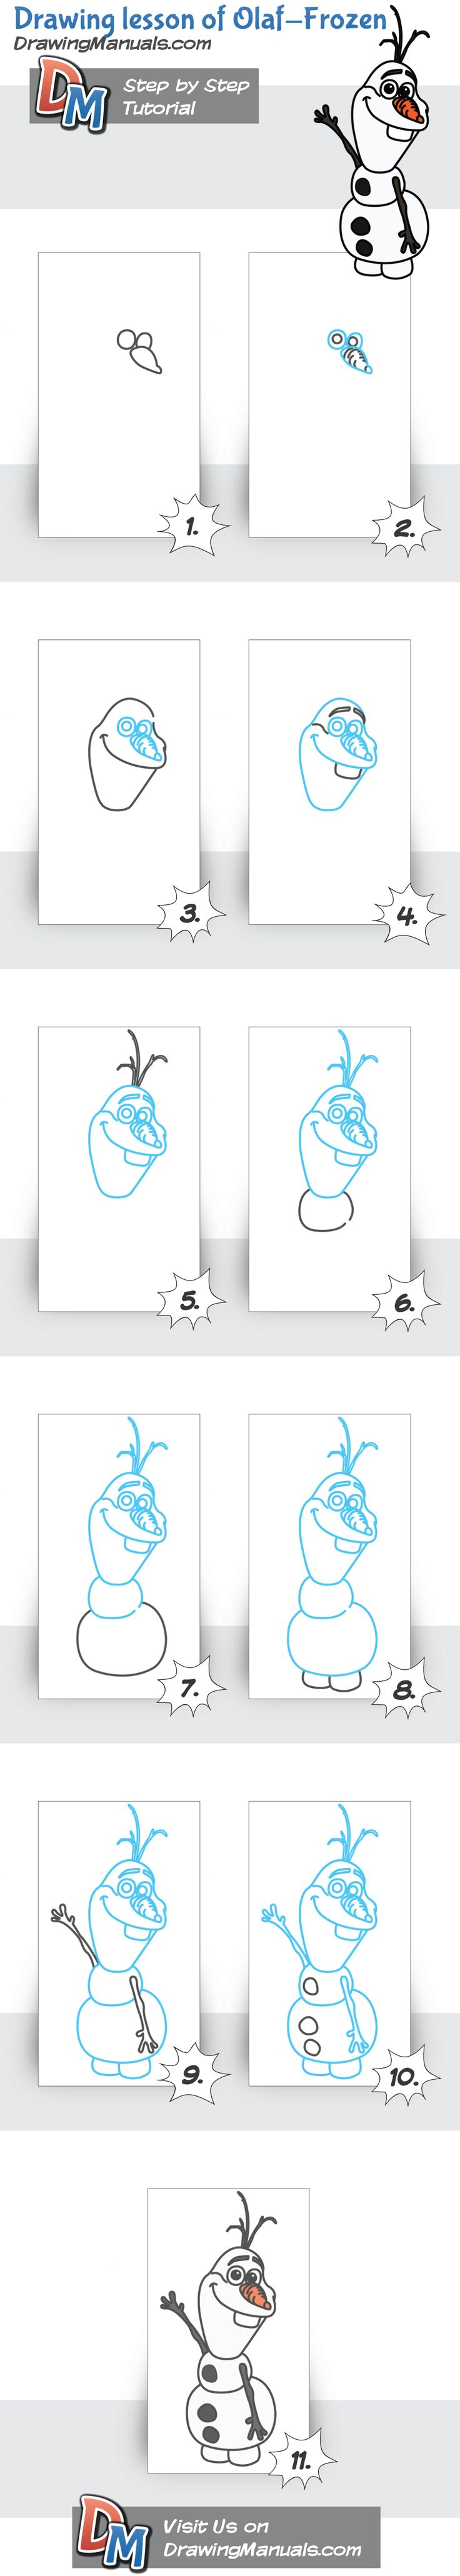 Drawing Steps of Olaf from Frozen